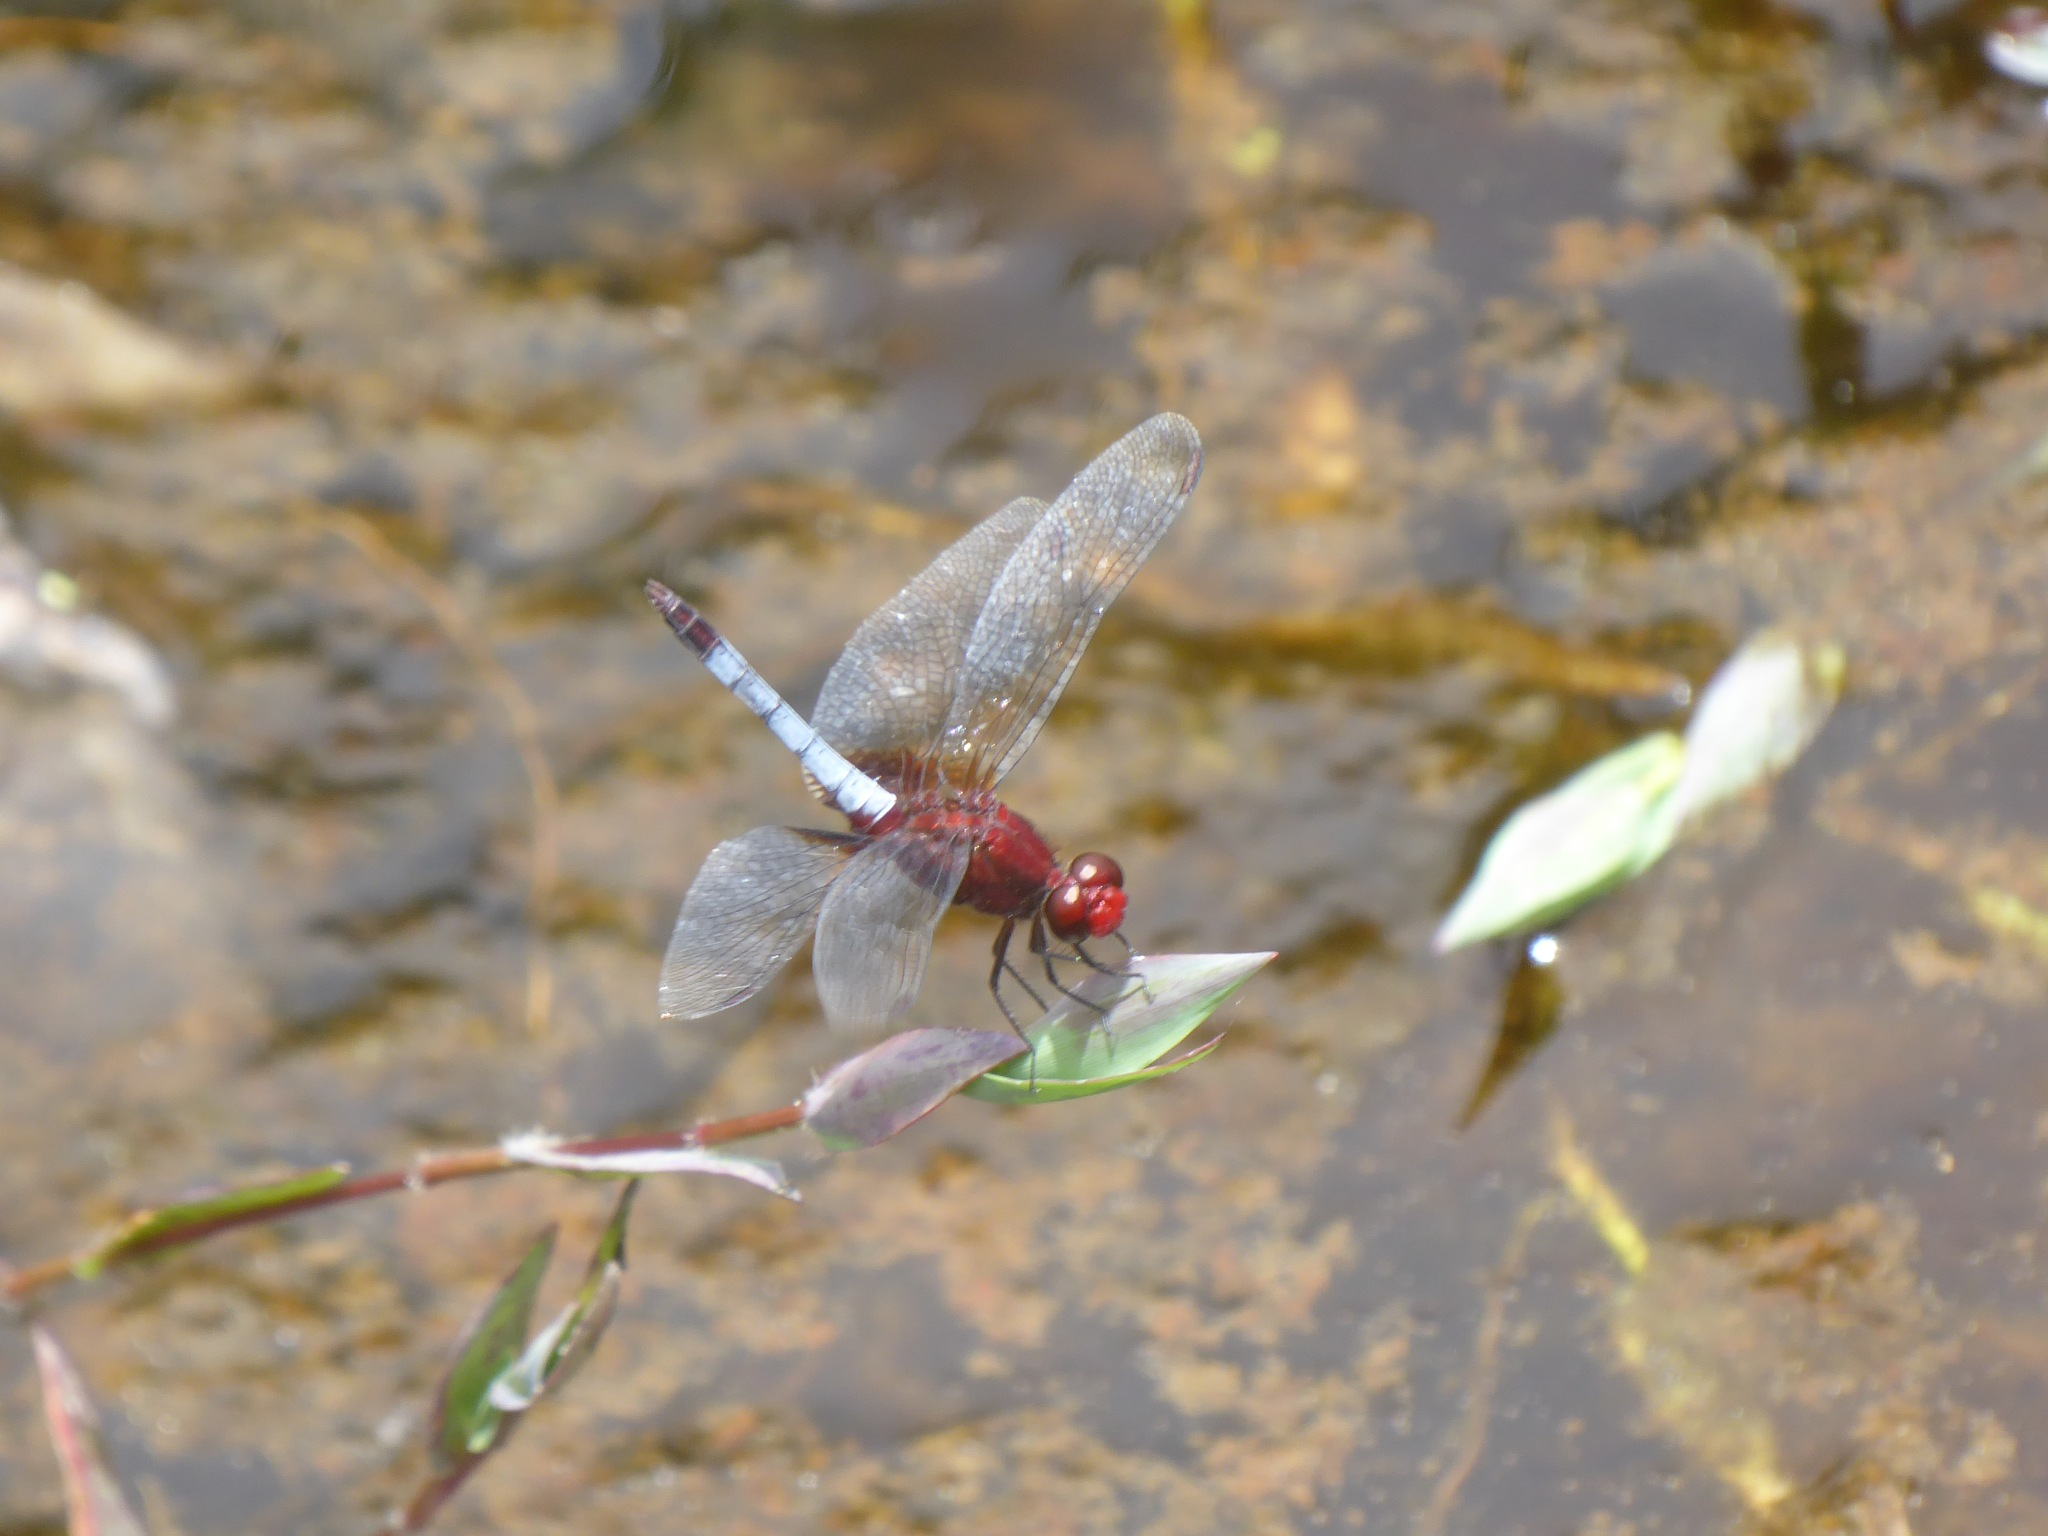 Another red dragonfly by Norbert Reiss